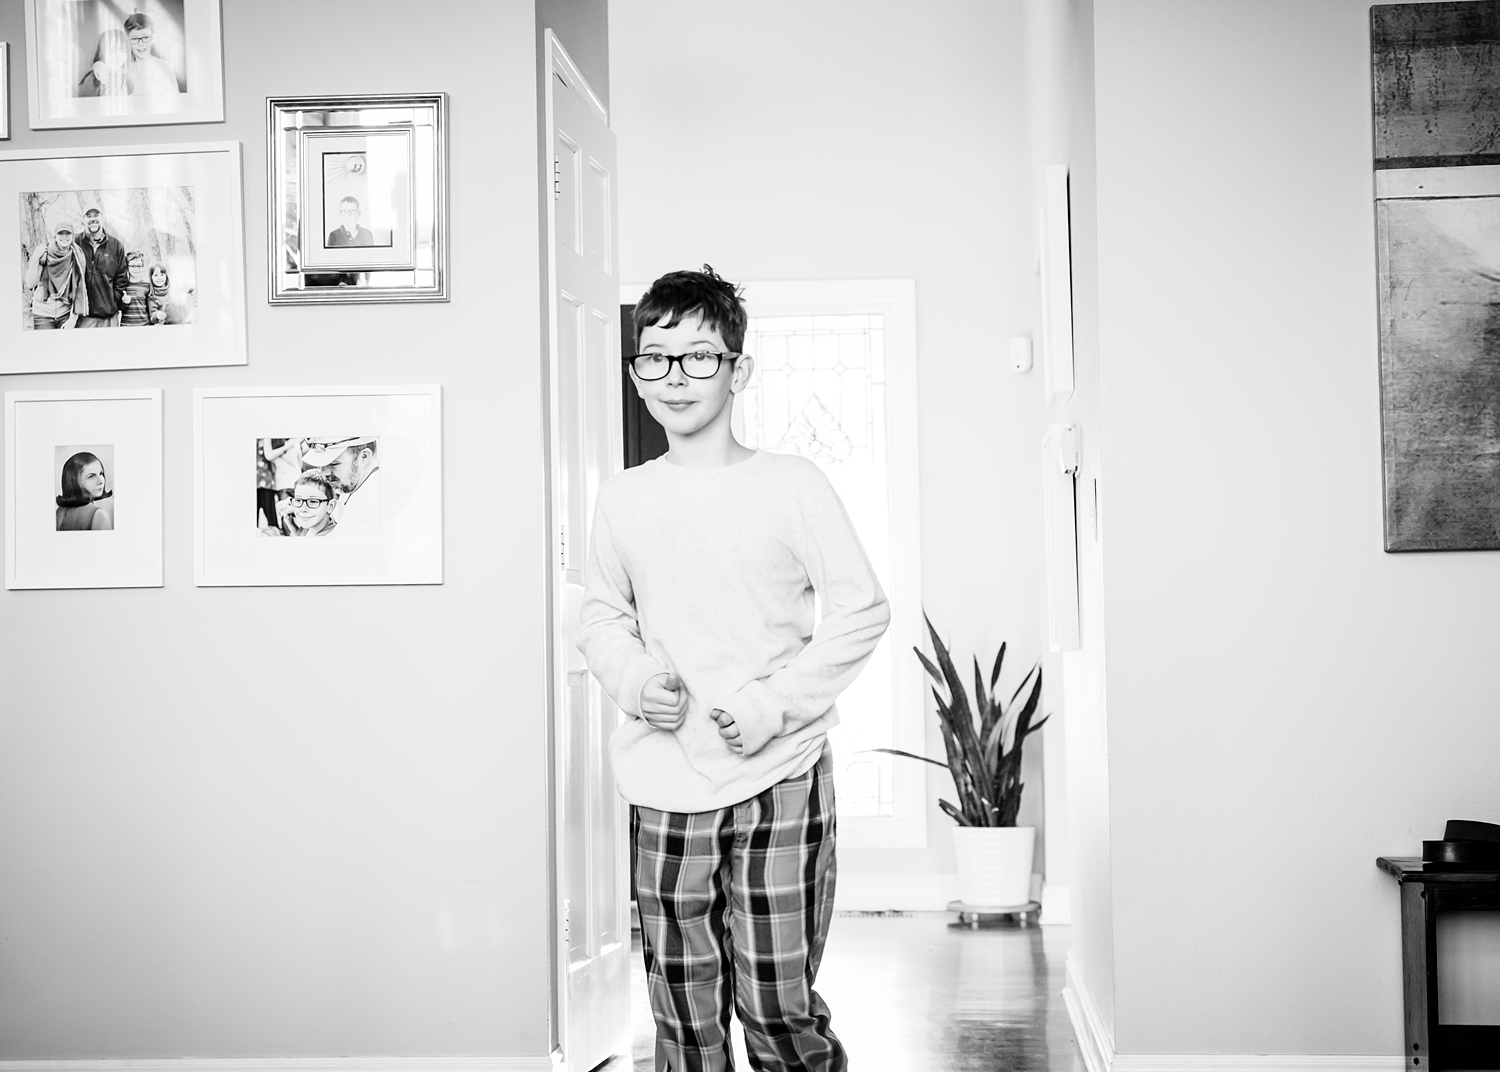 Here is a week in the life photo diary from Getting Unschooled! Take a peek behind our curtains to see what we do day-to-day as unschoolers :) Thanks for Pinning!